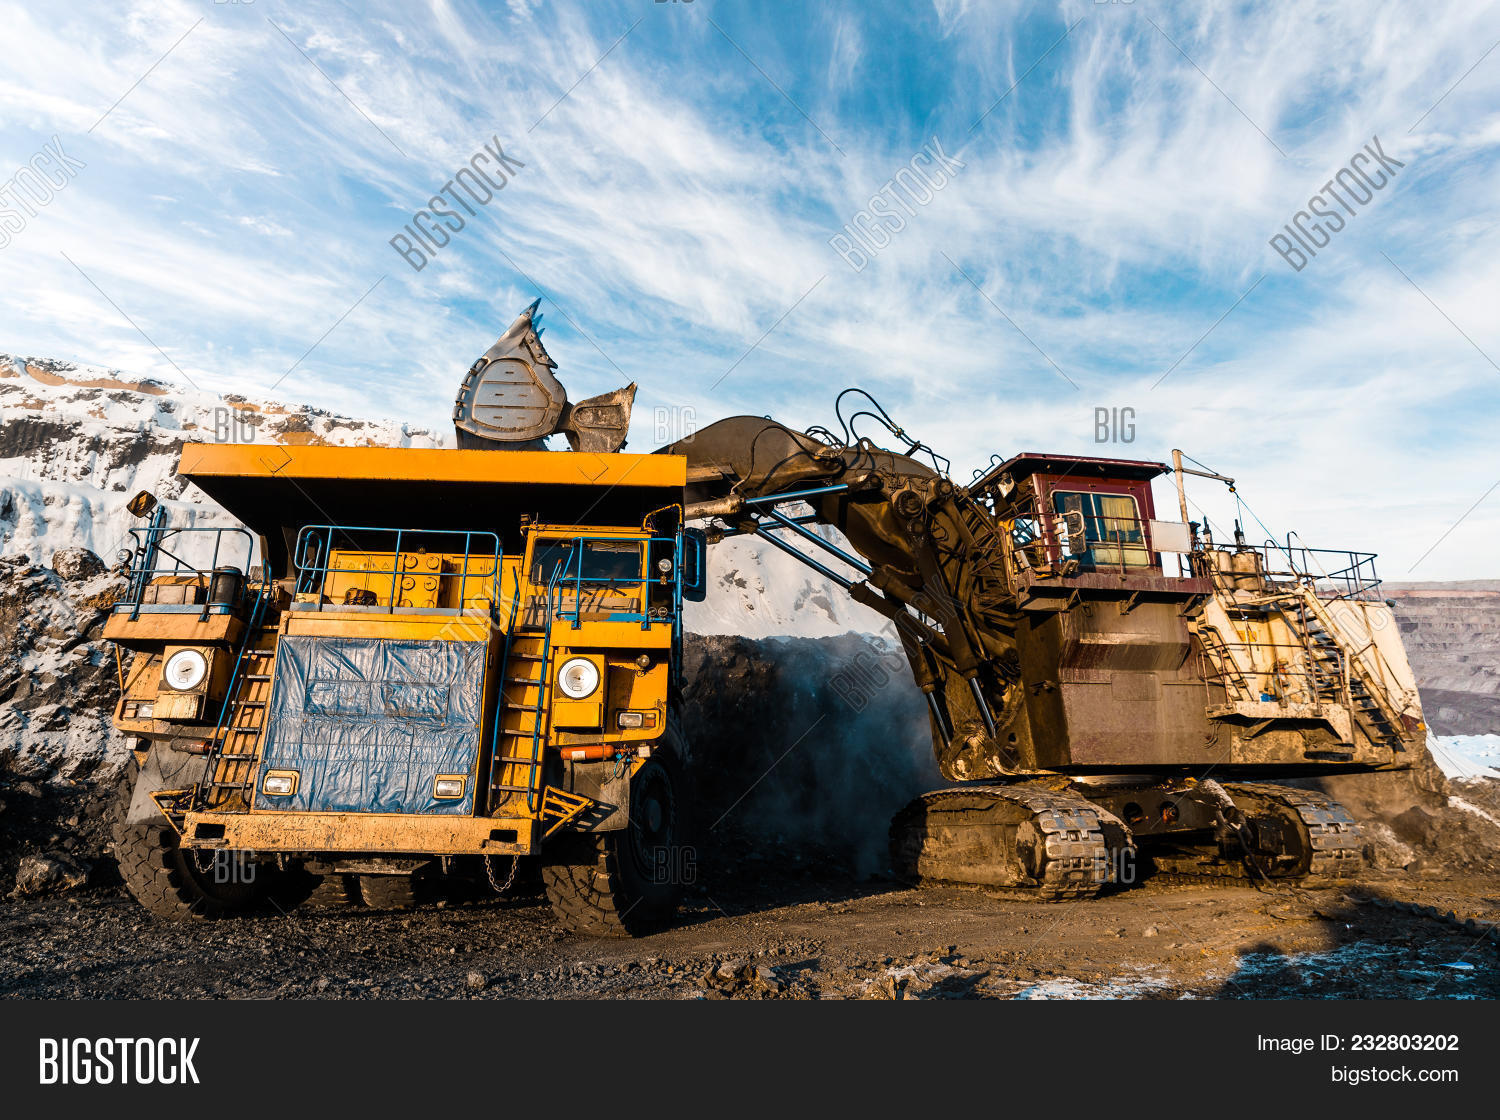 Large Quarry Dump Truck. Loading The Rock In The Dumper. Loading Coal Into Body Work Truck. Mining T